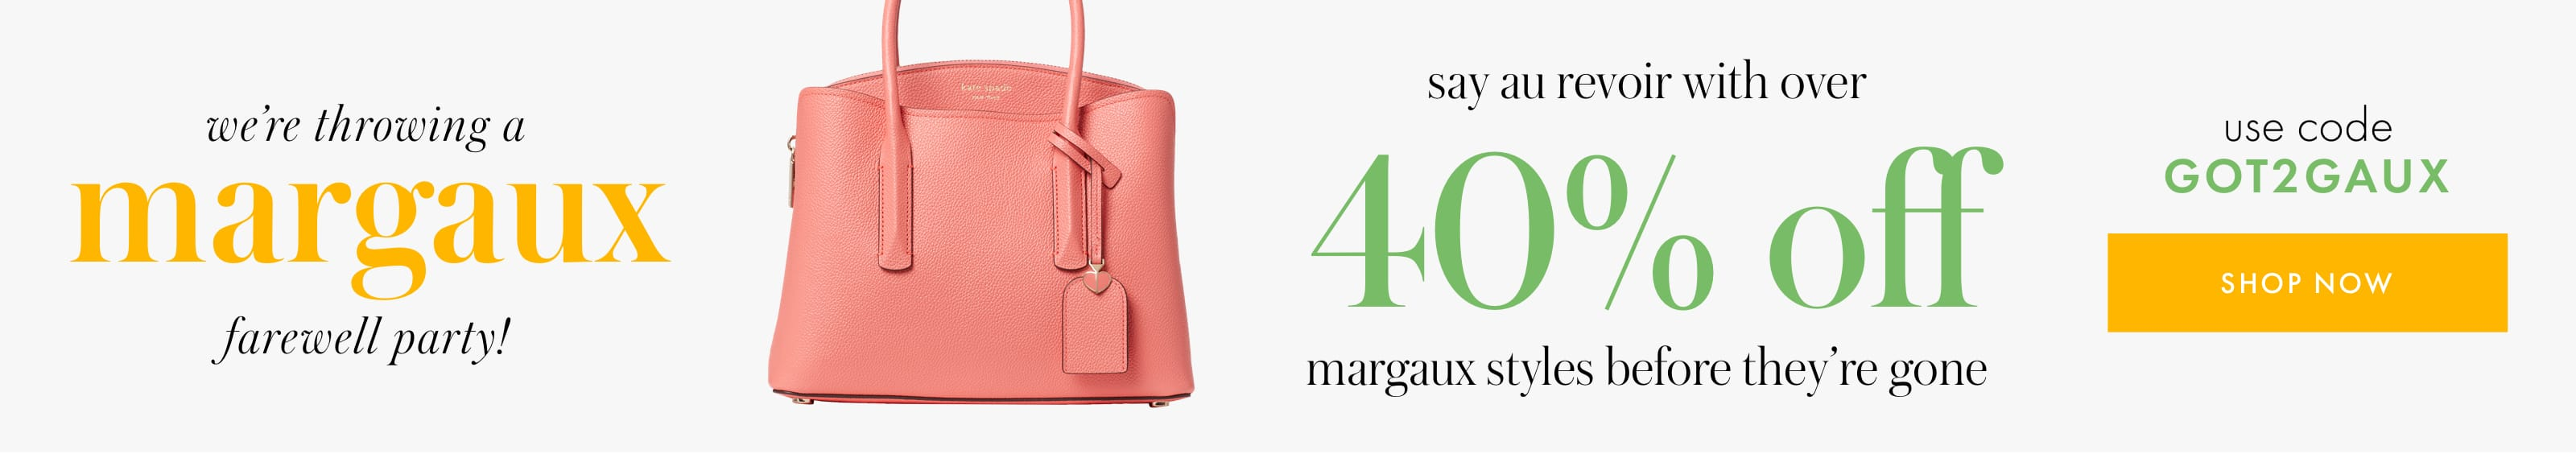 we're throwing a margaux farewell party! say au revoir with 25% off margaux styles before they're gone. use code GOT2GAUX. shop now